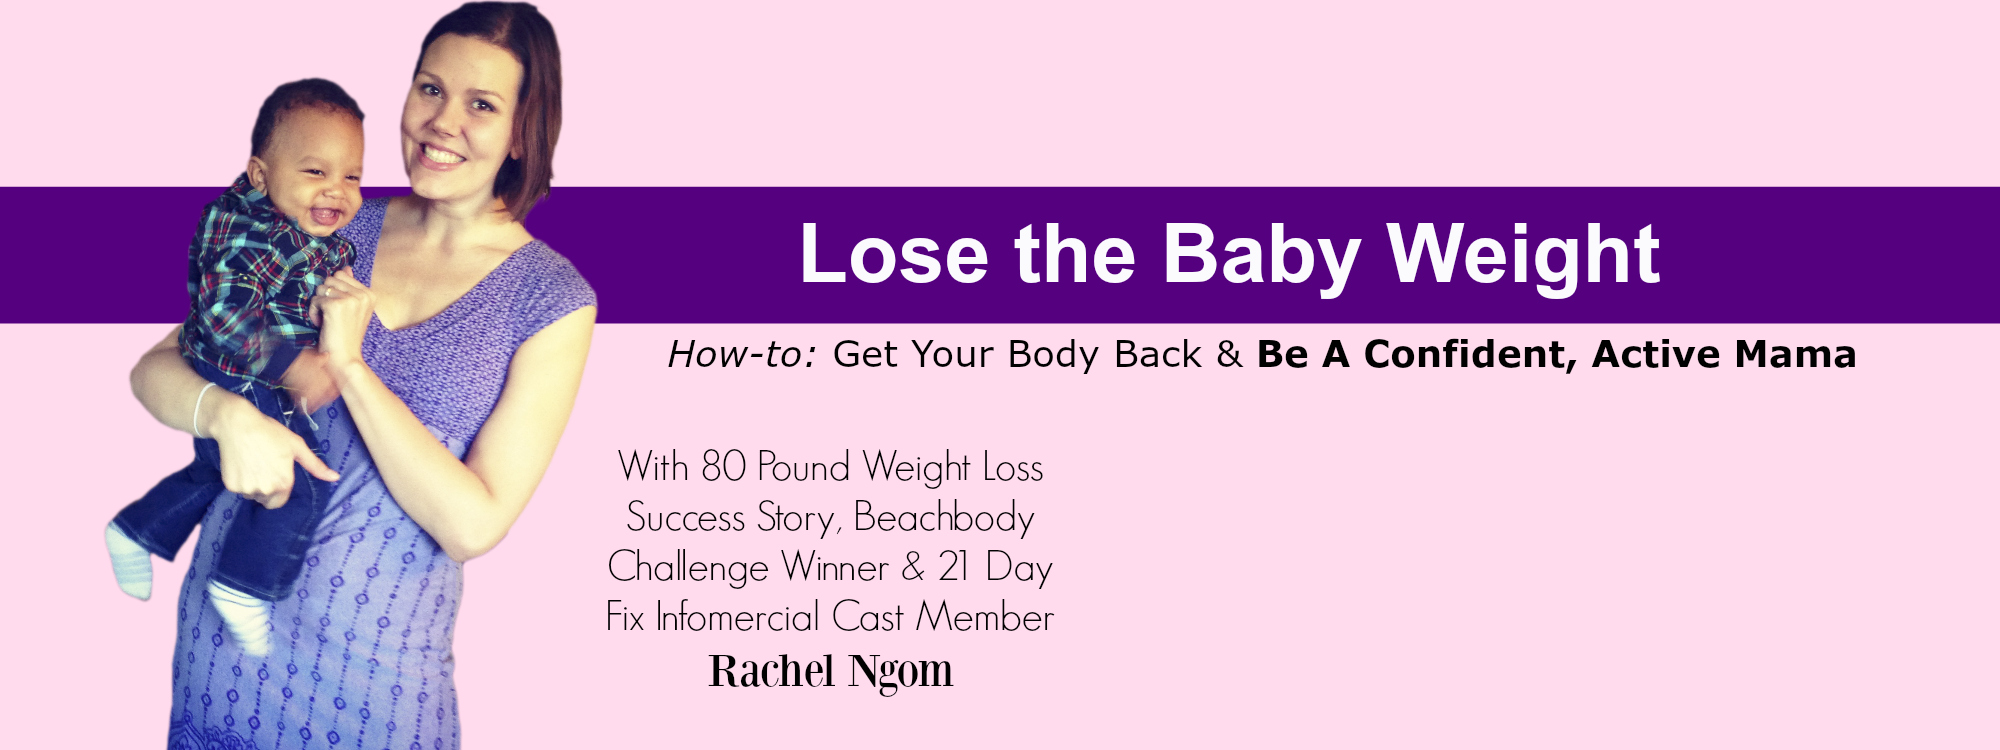 lose the baby weight header